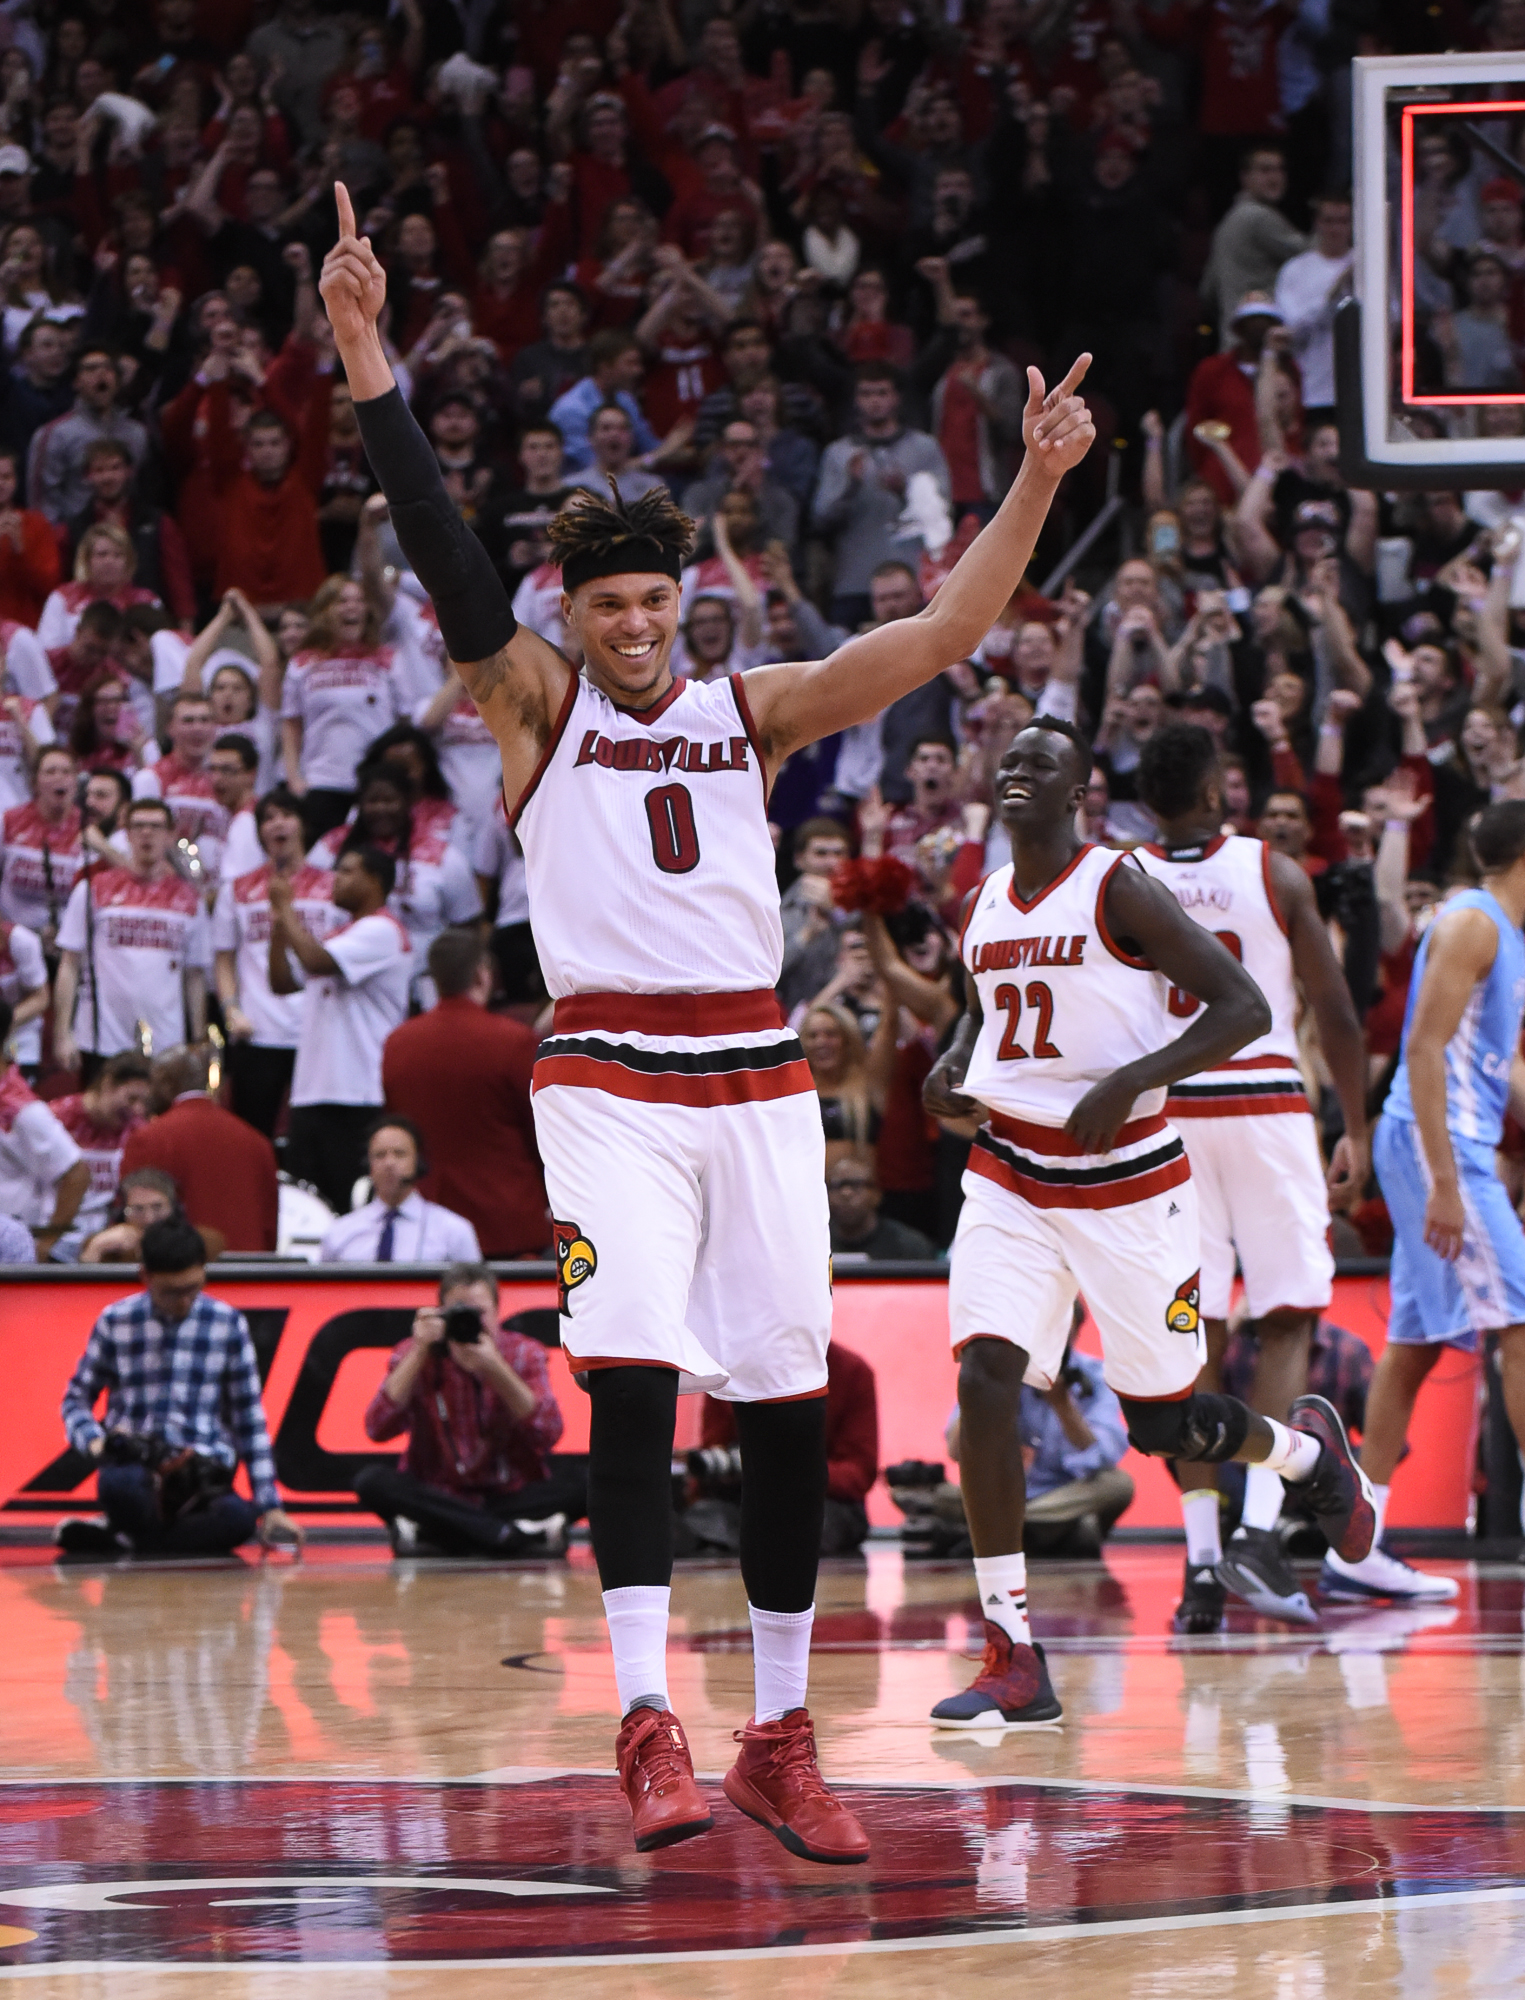 Damion Lee Celebrates the win over UNC